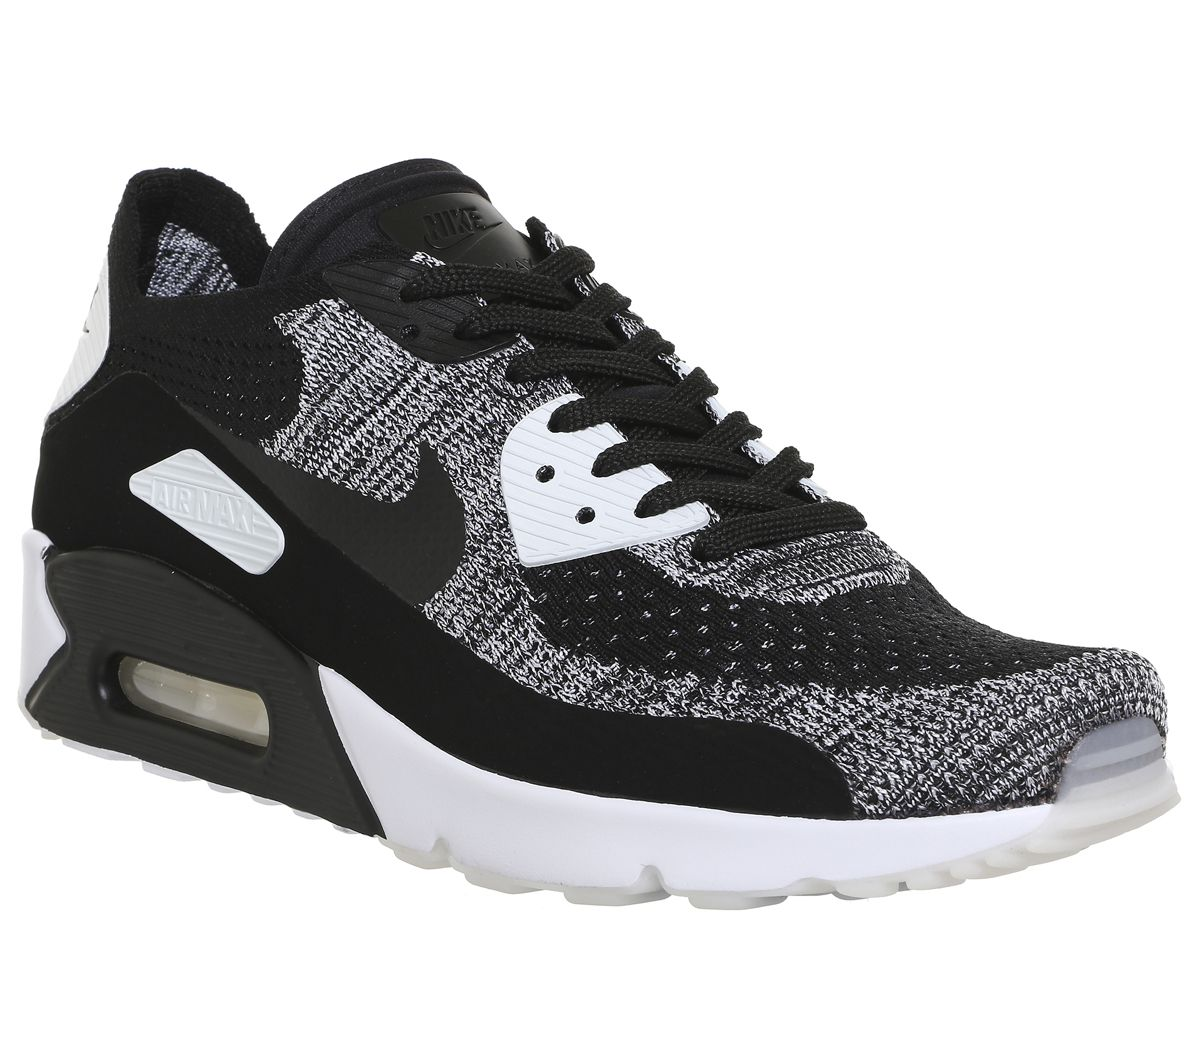 new concept 6c908 17cb7 Nike Air Max 90 Ultra 2.0 Fk Black White - His trainers